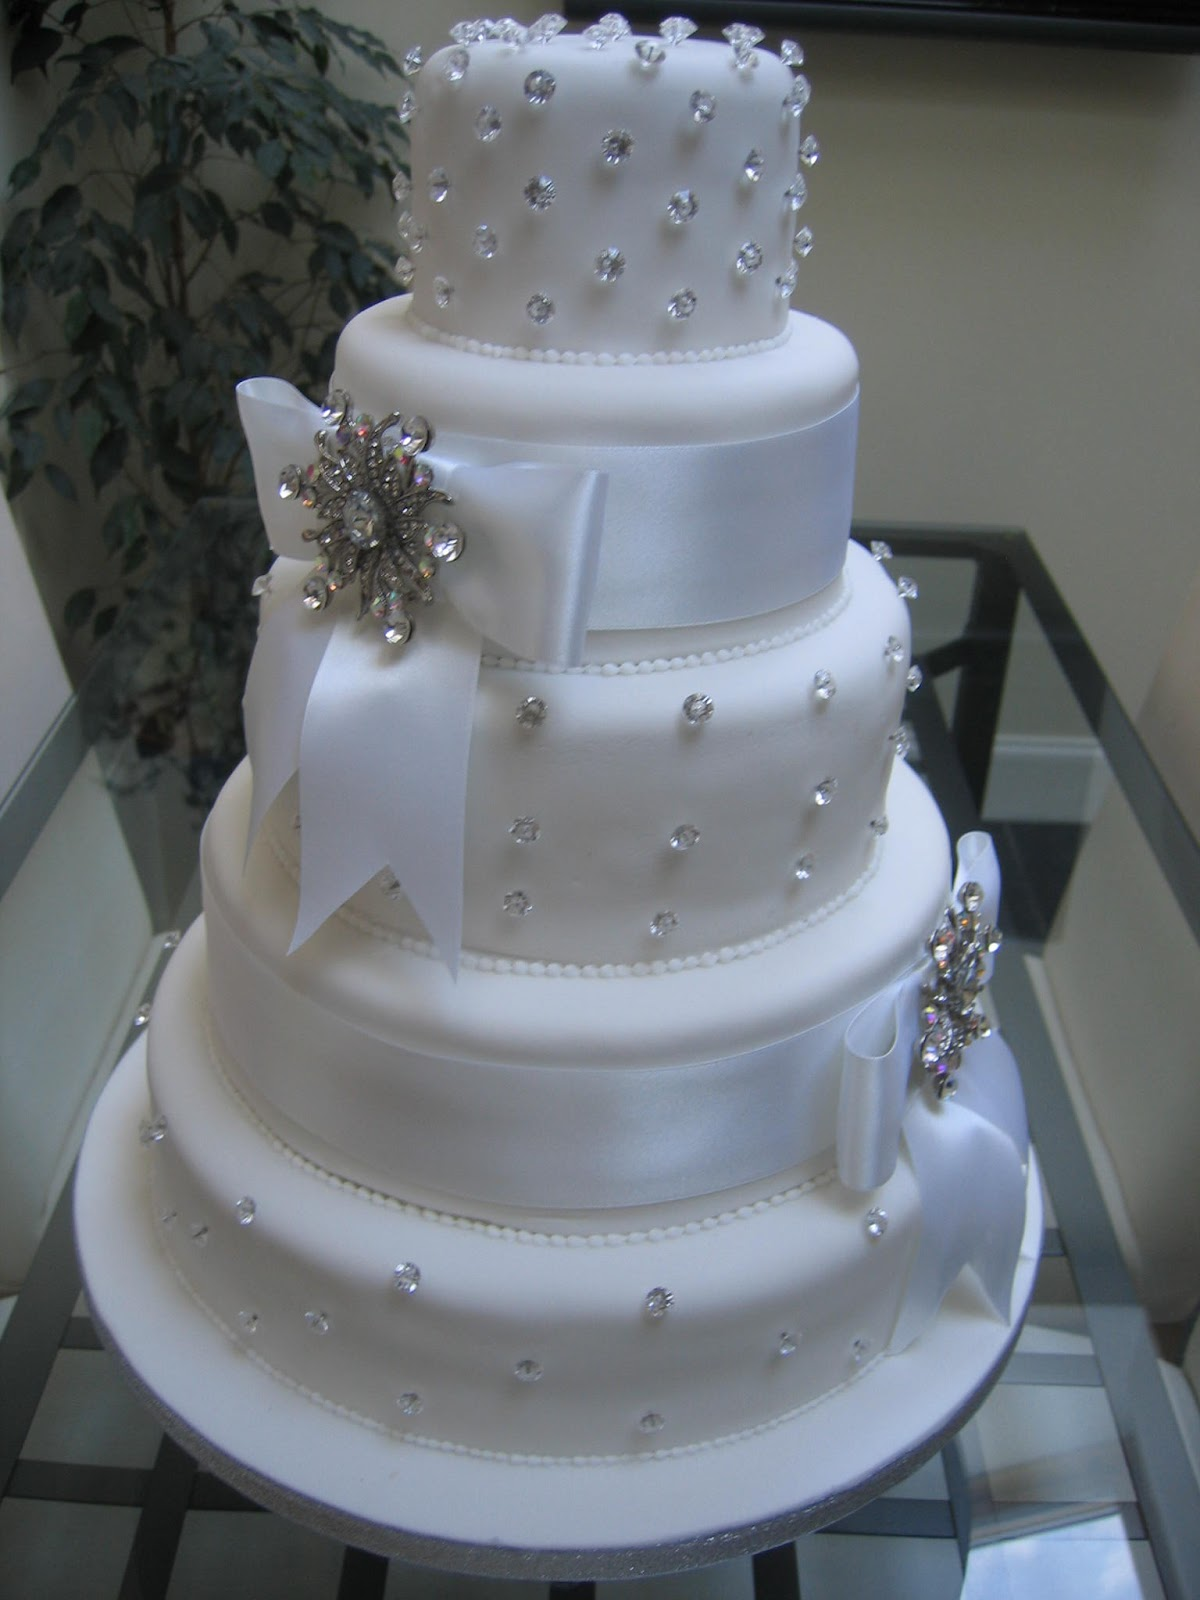 Wedding cakes images with bling